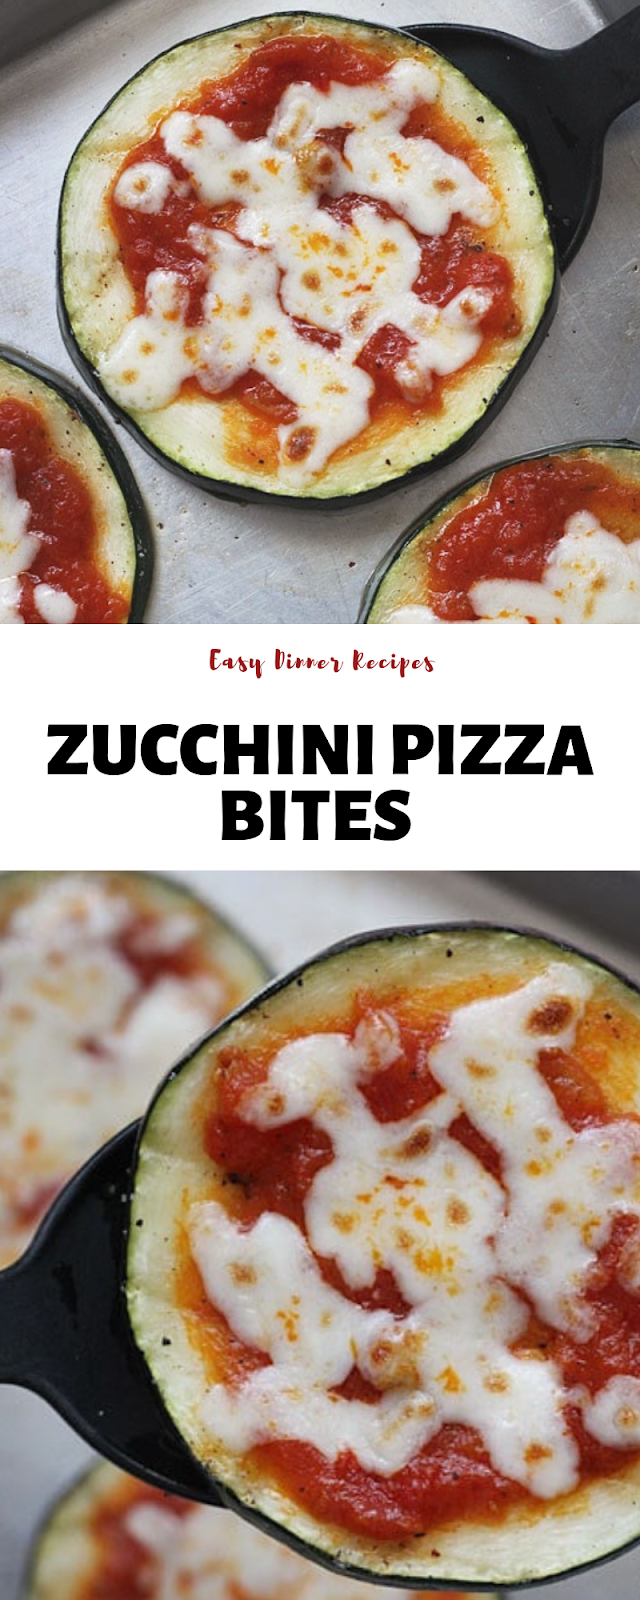 Easy Dinner Recipes | Zucchini Pizza Bites #chickenbreastrecipeseasy Easy Dinner Recipes | Zucchini Pizza Bites| Easy dinner recipes, Food recipes, Baked chicken recipes, Chicken casserole recipes, Chicken breastrecipes, dinner recipes healthy, Easy dinner recipes, Healthy meals, Easy healthy dinner, Whole 30 recipes, Clean eating recipes, Paleo recipes, Easy dinner recipes, #dinner, #recipes,#dinnerforfamily, #dinnerfortwo, #delicious, #yummy, #zucchinipizzabites, #chickenbreastrecipeseasy Easy #chickenbreastrecipeseasy